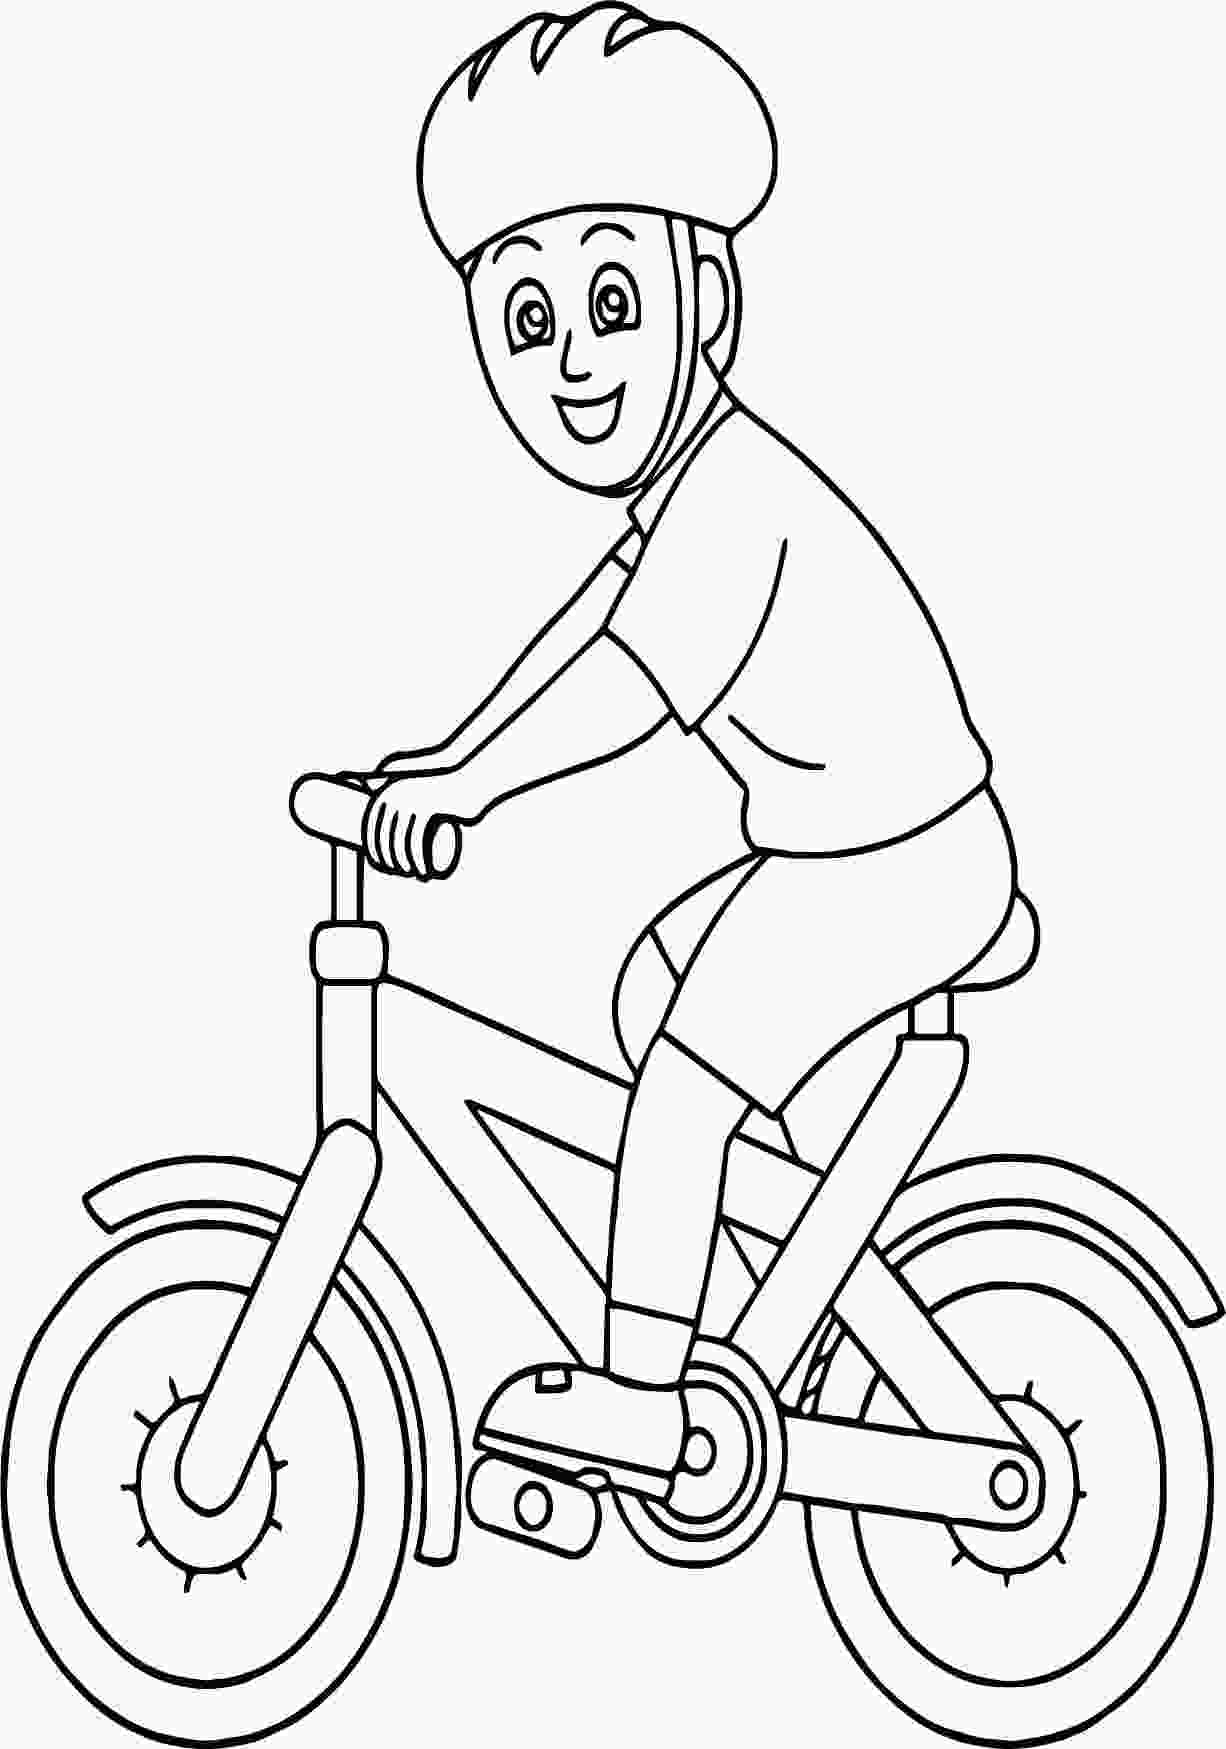 bike helmet coloring page atv helmet coloring pages sketch coloring page